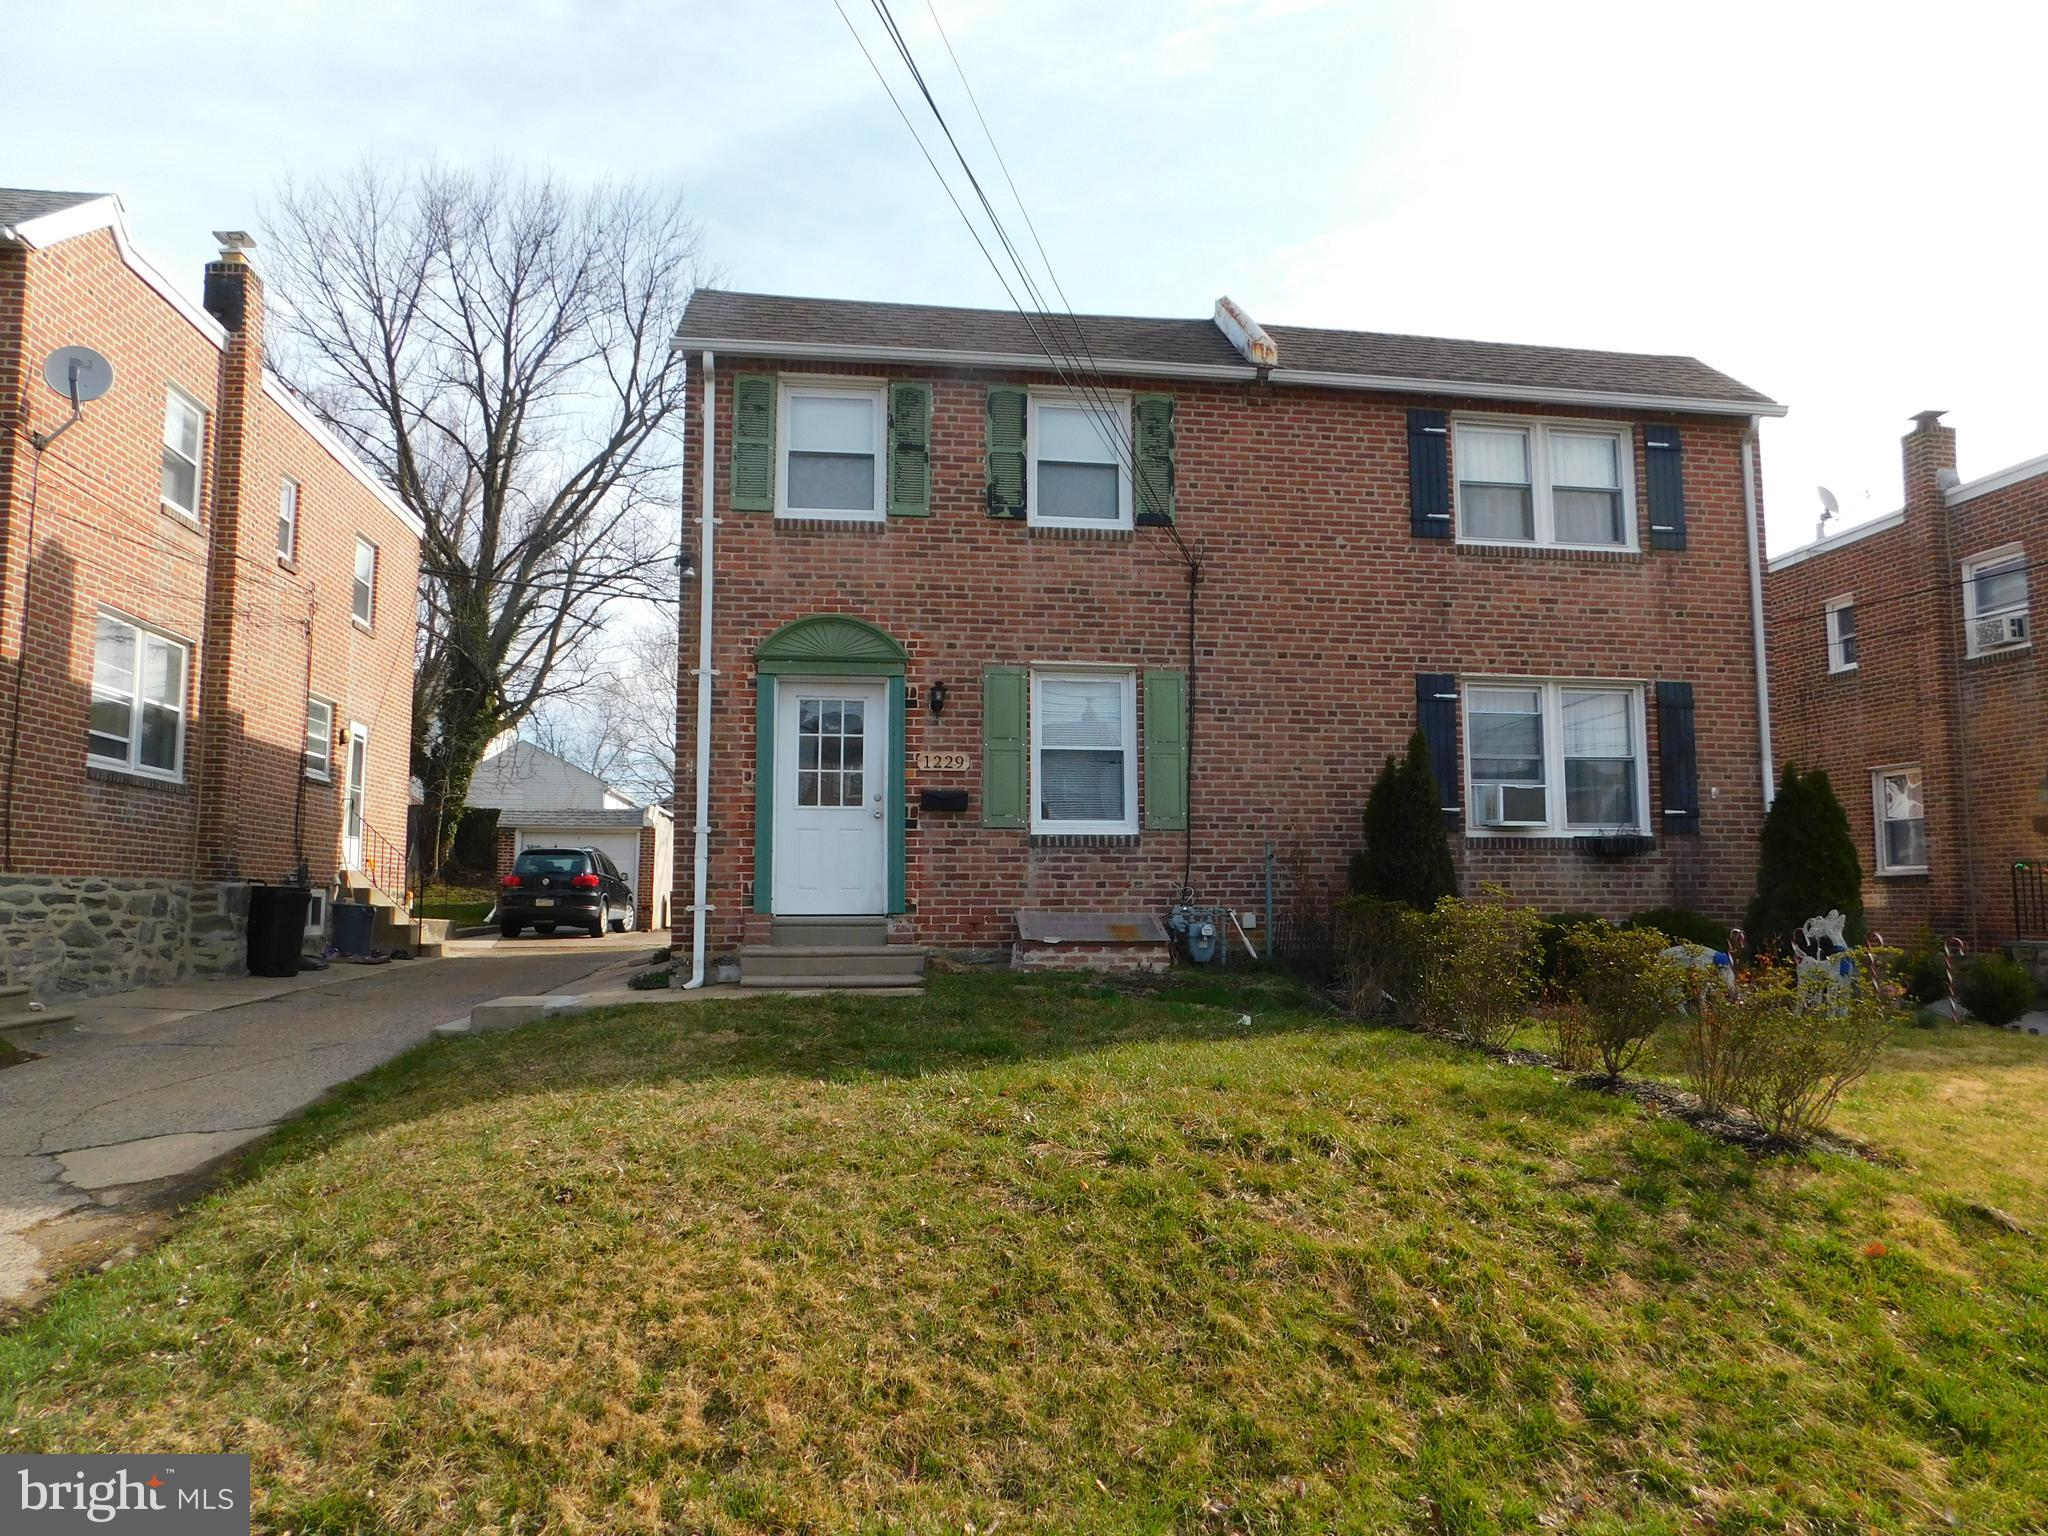 Investor Alert! Cash Only! Three bedroom,  One bath, Brick  twin home  in Upper Darby. Property is being sold as is, seller will make no repairs or clean out any contents of house. . Buyer is responsible for doing the Twp sewer inspection and ordering Twp U & O and any and all repairs call for by twp. Inspect and make offer.